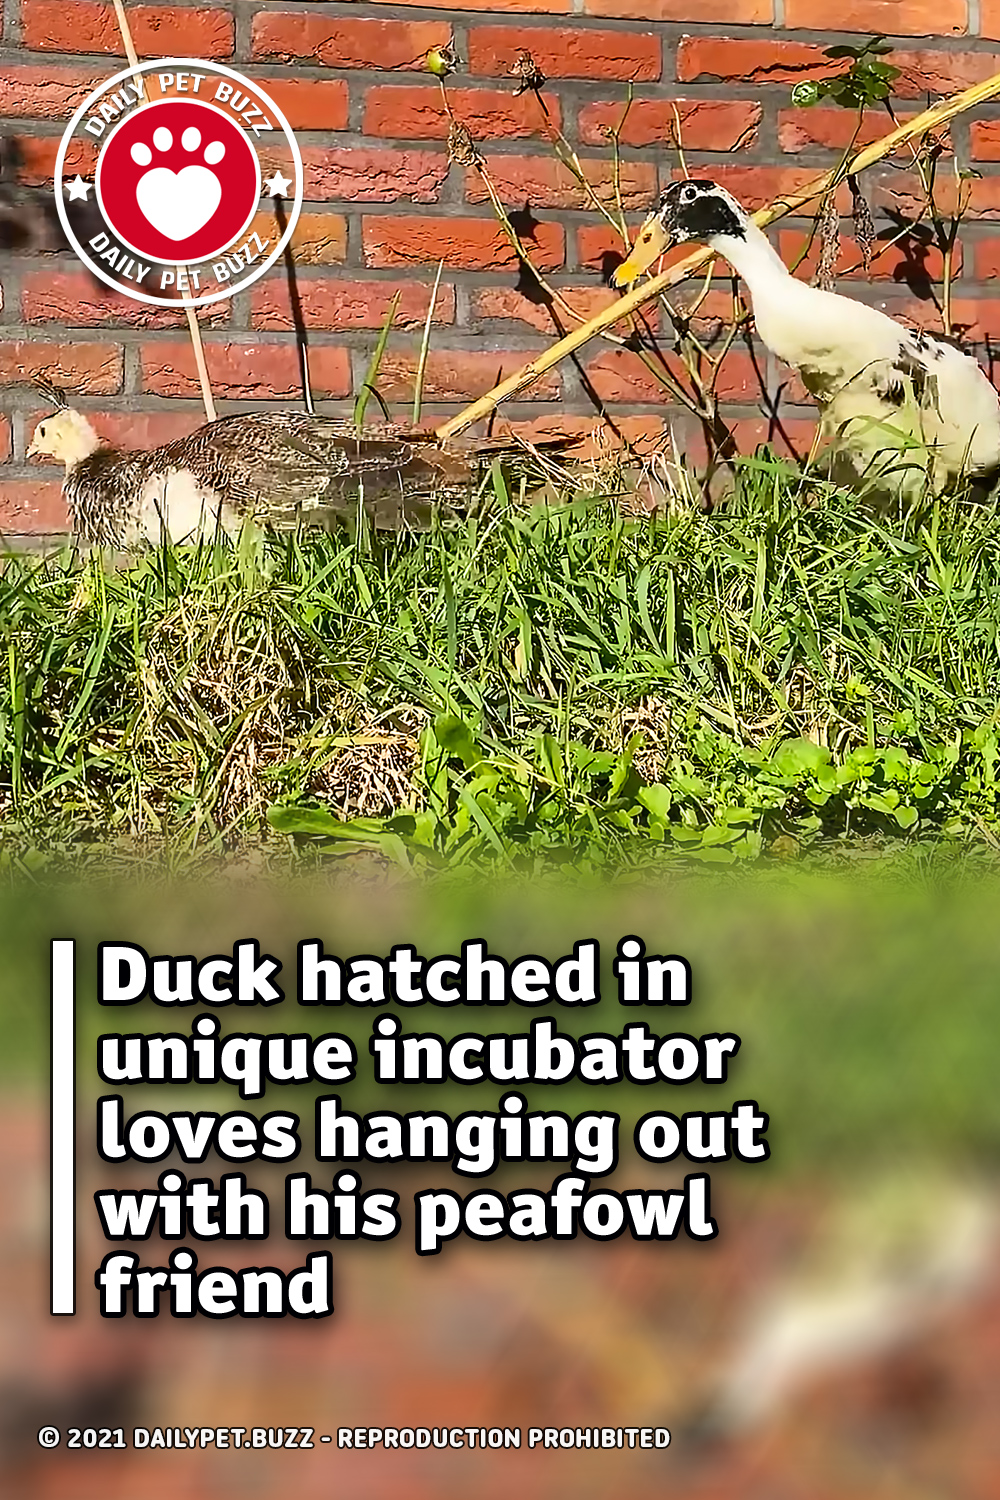 Duck hatched in unique incubator loves hanging out with his peafowl friend